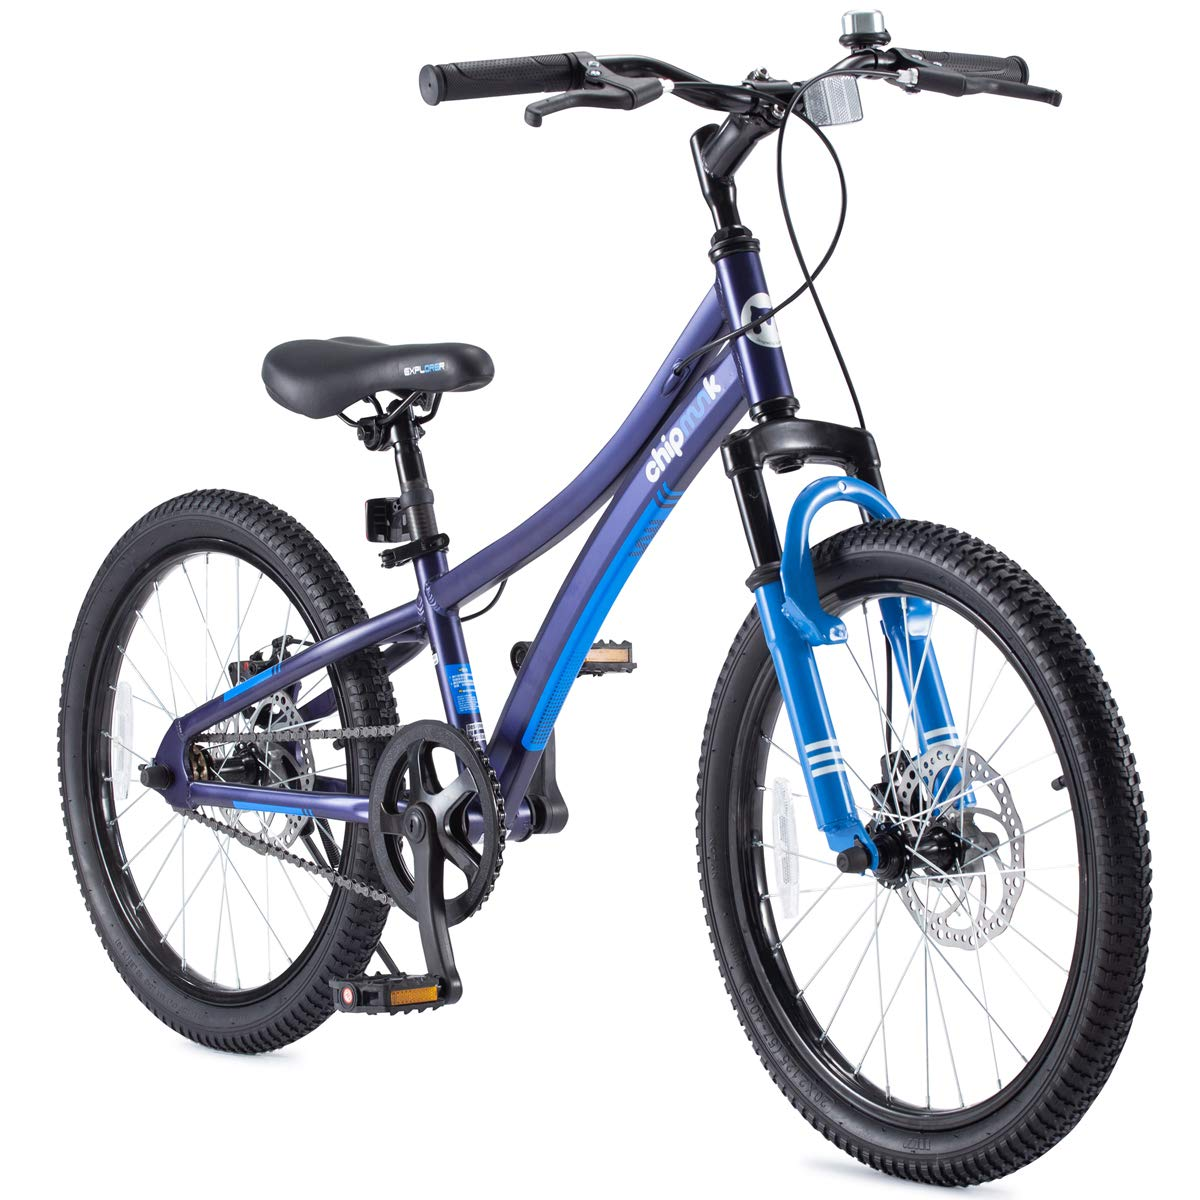 Royalbaby Childrens-Mountain-Bicycles Royalbaby Boys Girls Kids Bike Explorer Bicycle Front Suspension Aluminum Child's Cycle with Disc Brakes